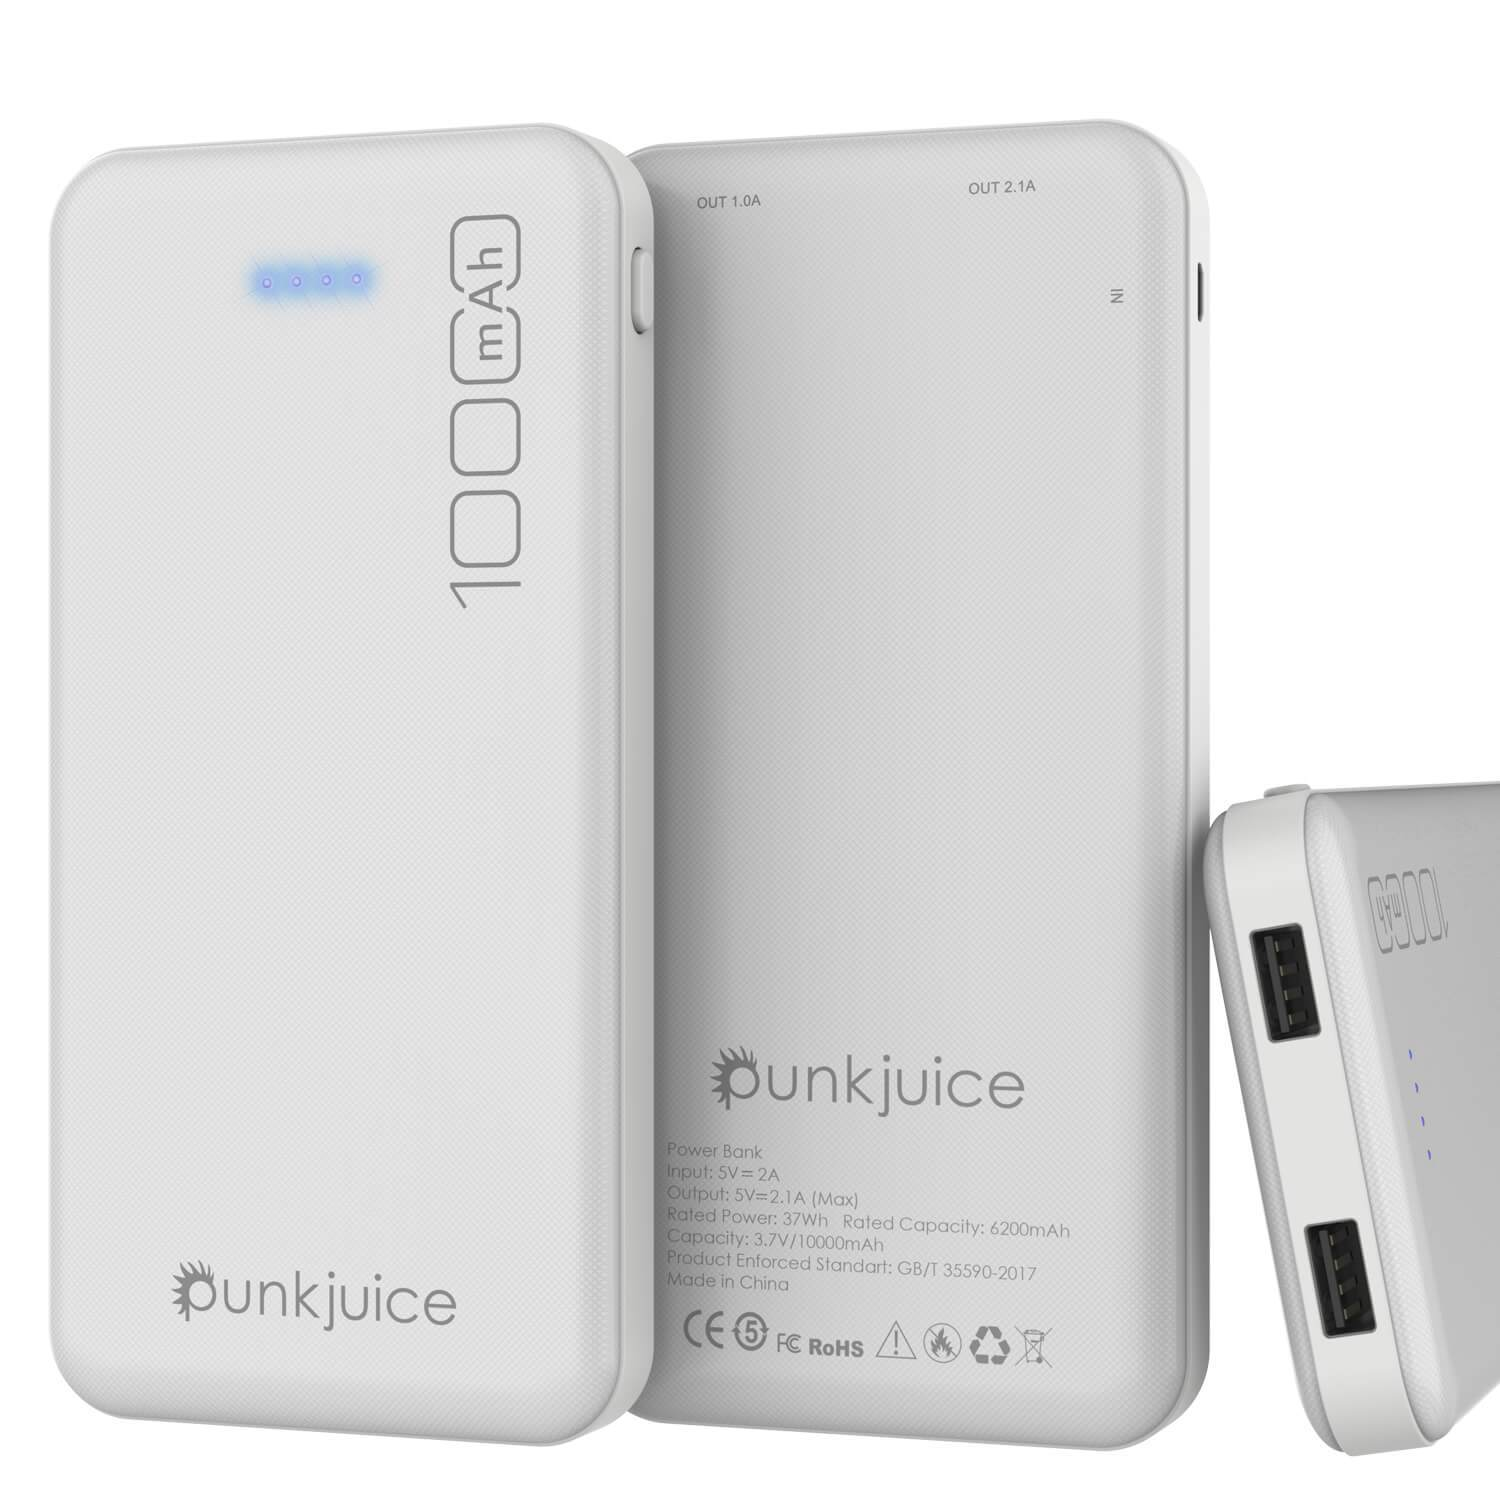 PunkCase PowerBank 10000mah Battery Pack for iPhone X/XS/Max/XR / 11/10, iPad, Samsung Galaxy S10 / S9 and Many More [White]